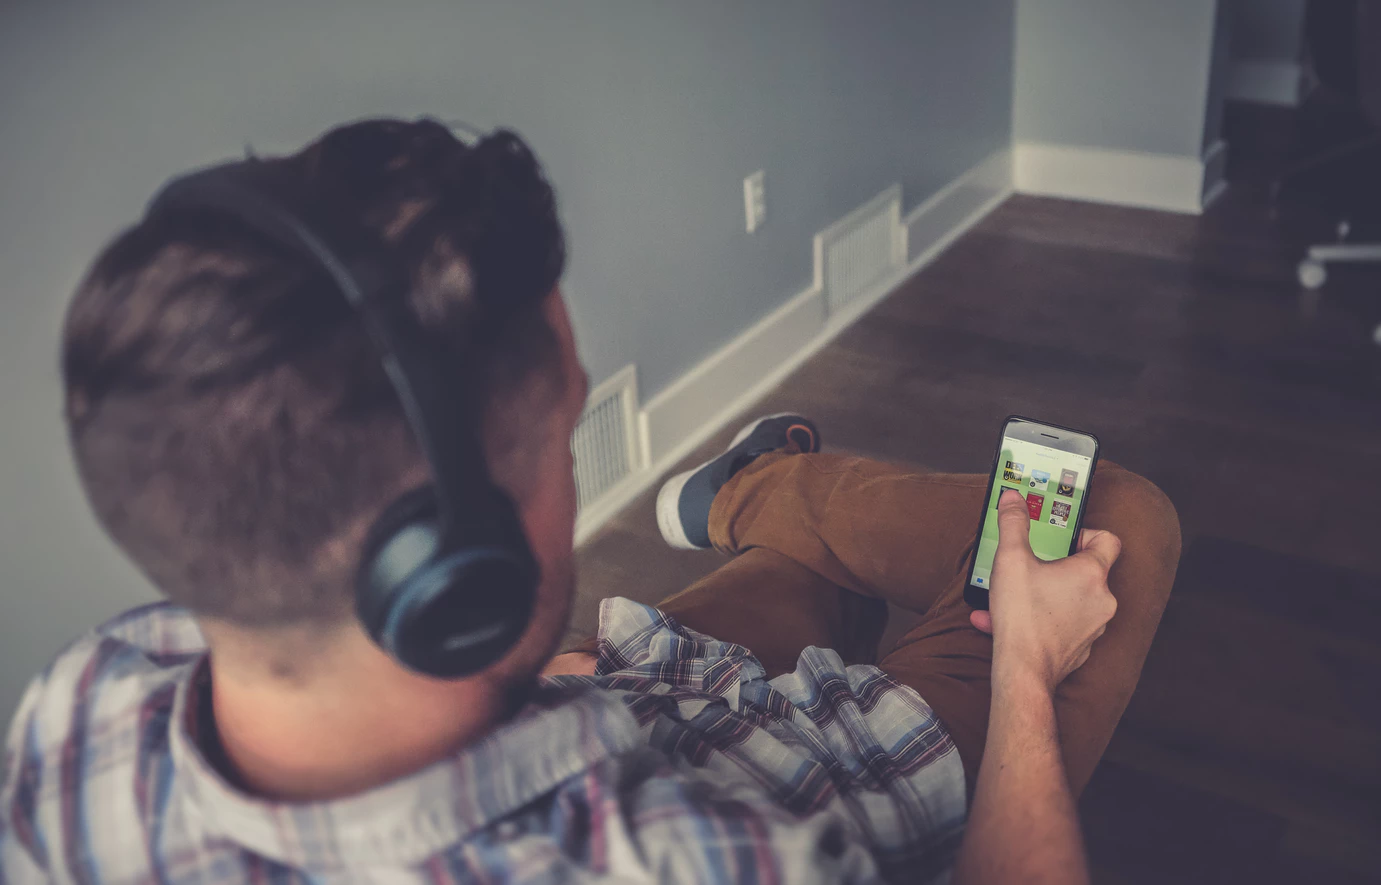 digital nomad selecting from the best entrepreneur podcasts on his phone